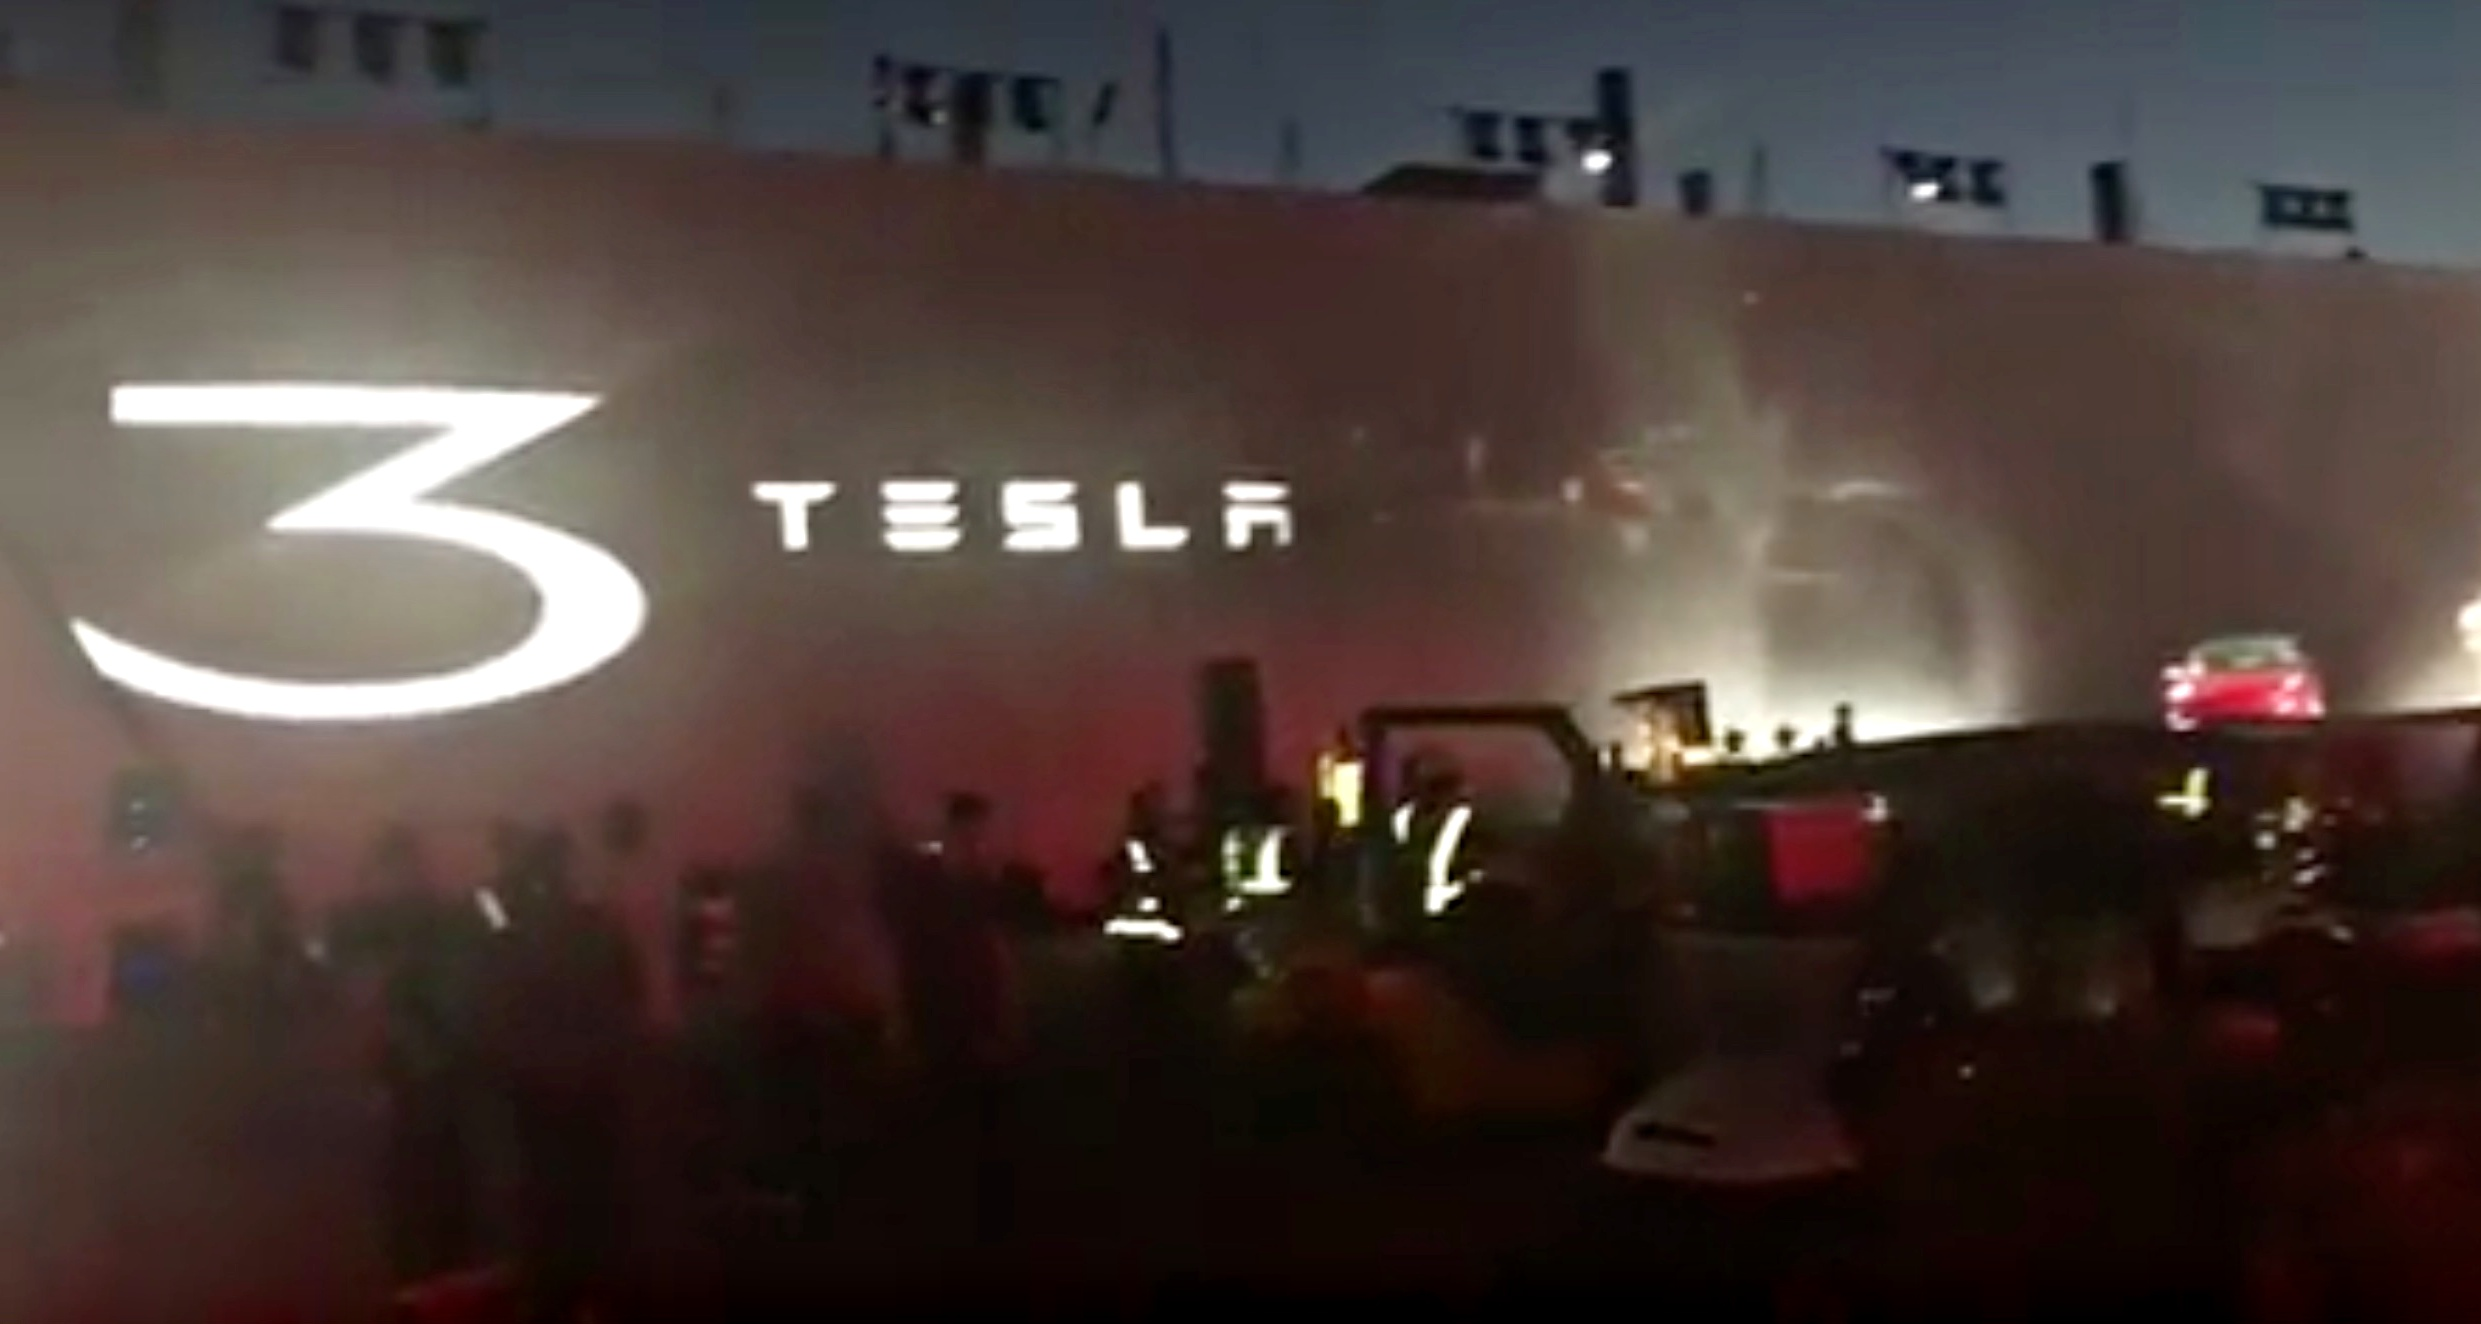 tesla-model-3-event-stage